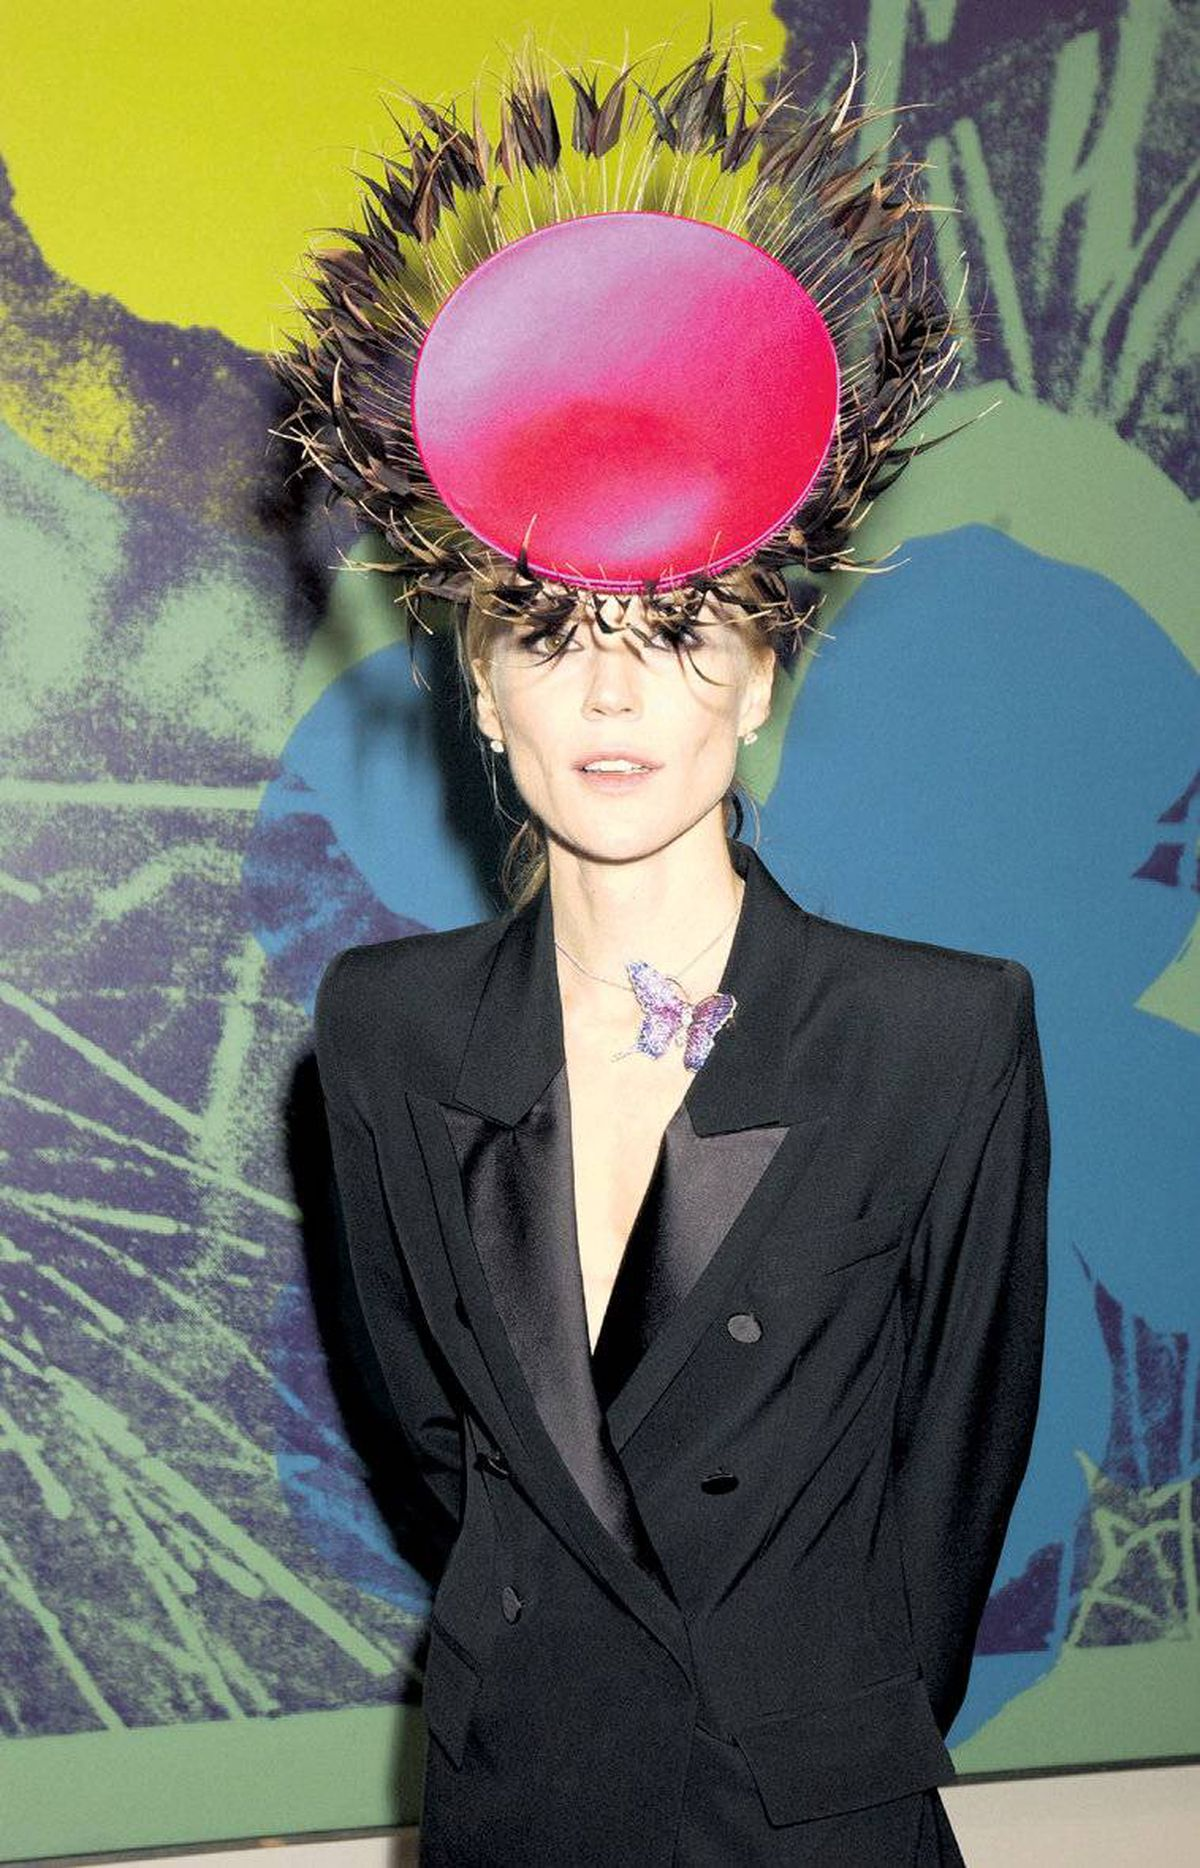 Daphne Guinness: Disc jockey